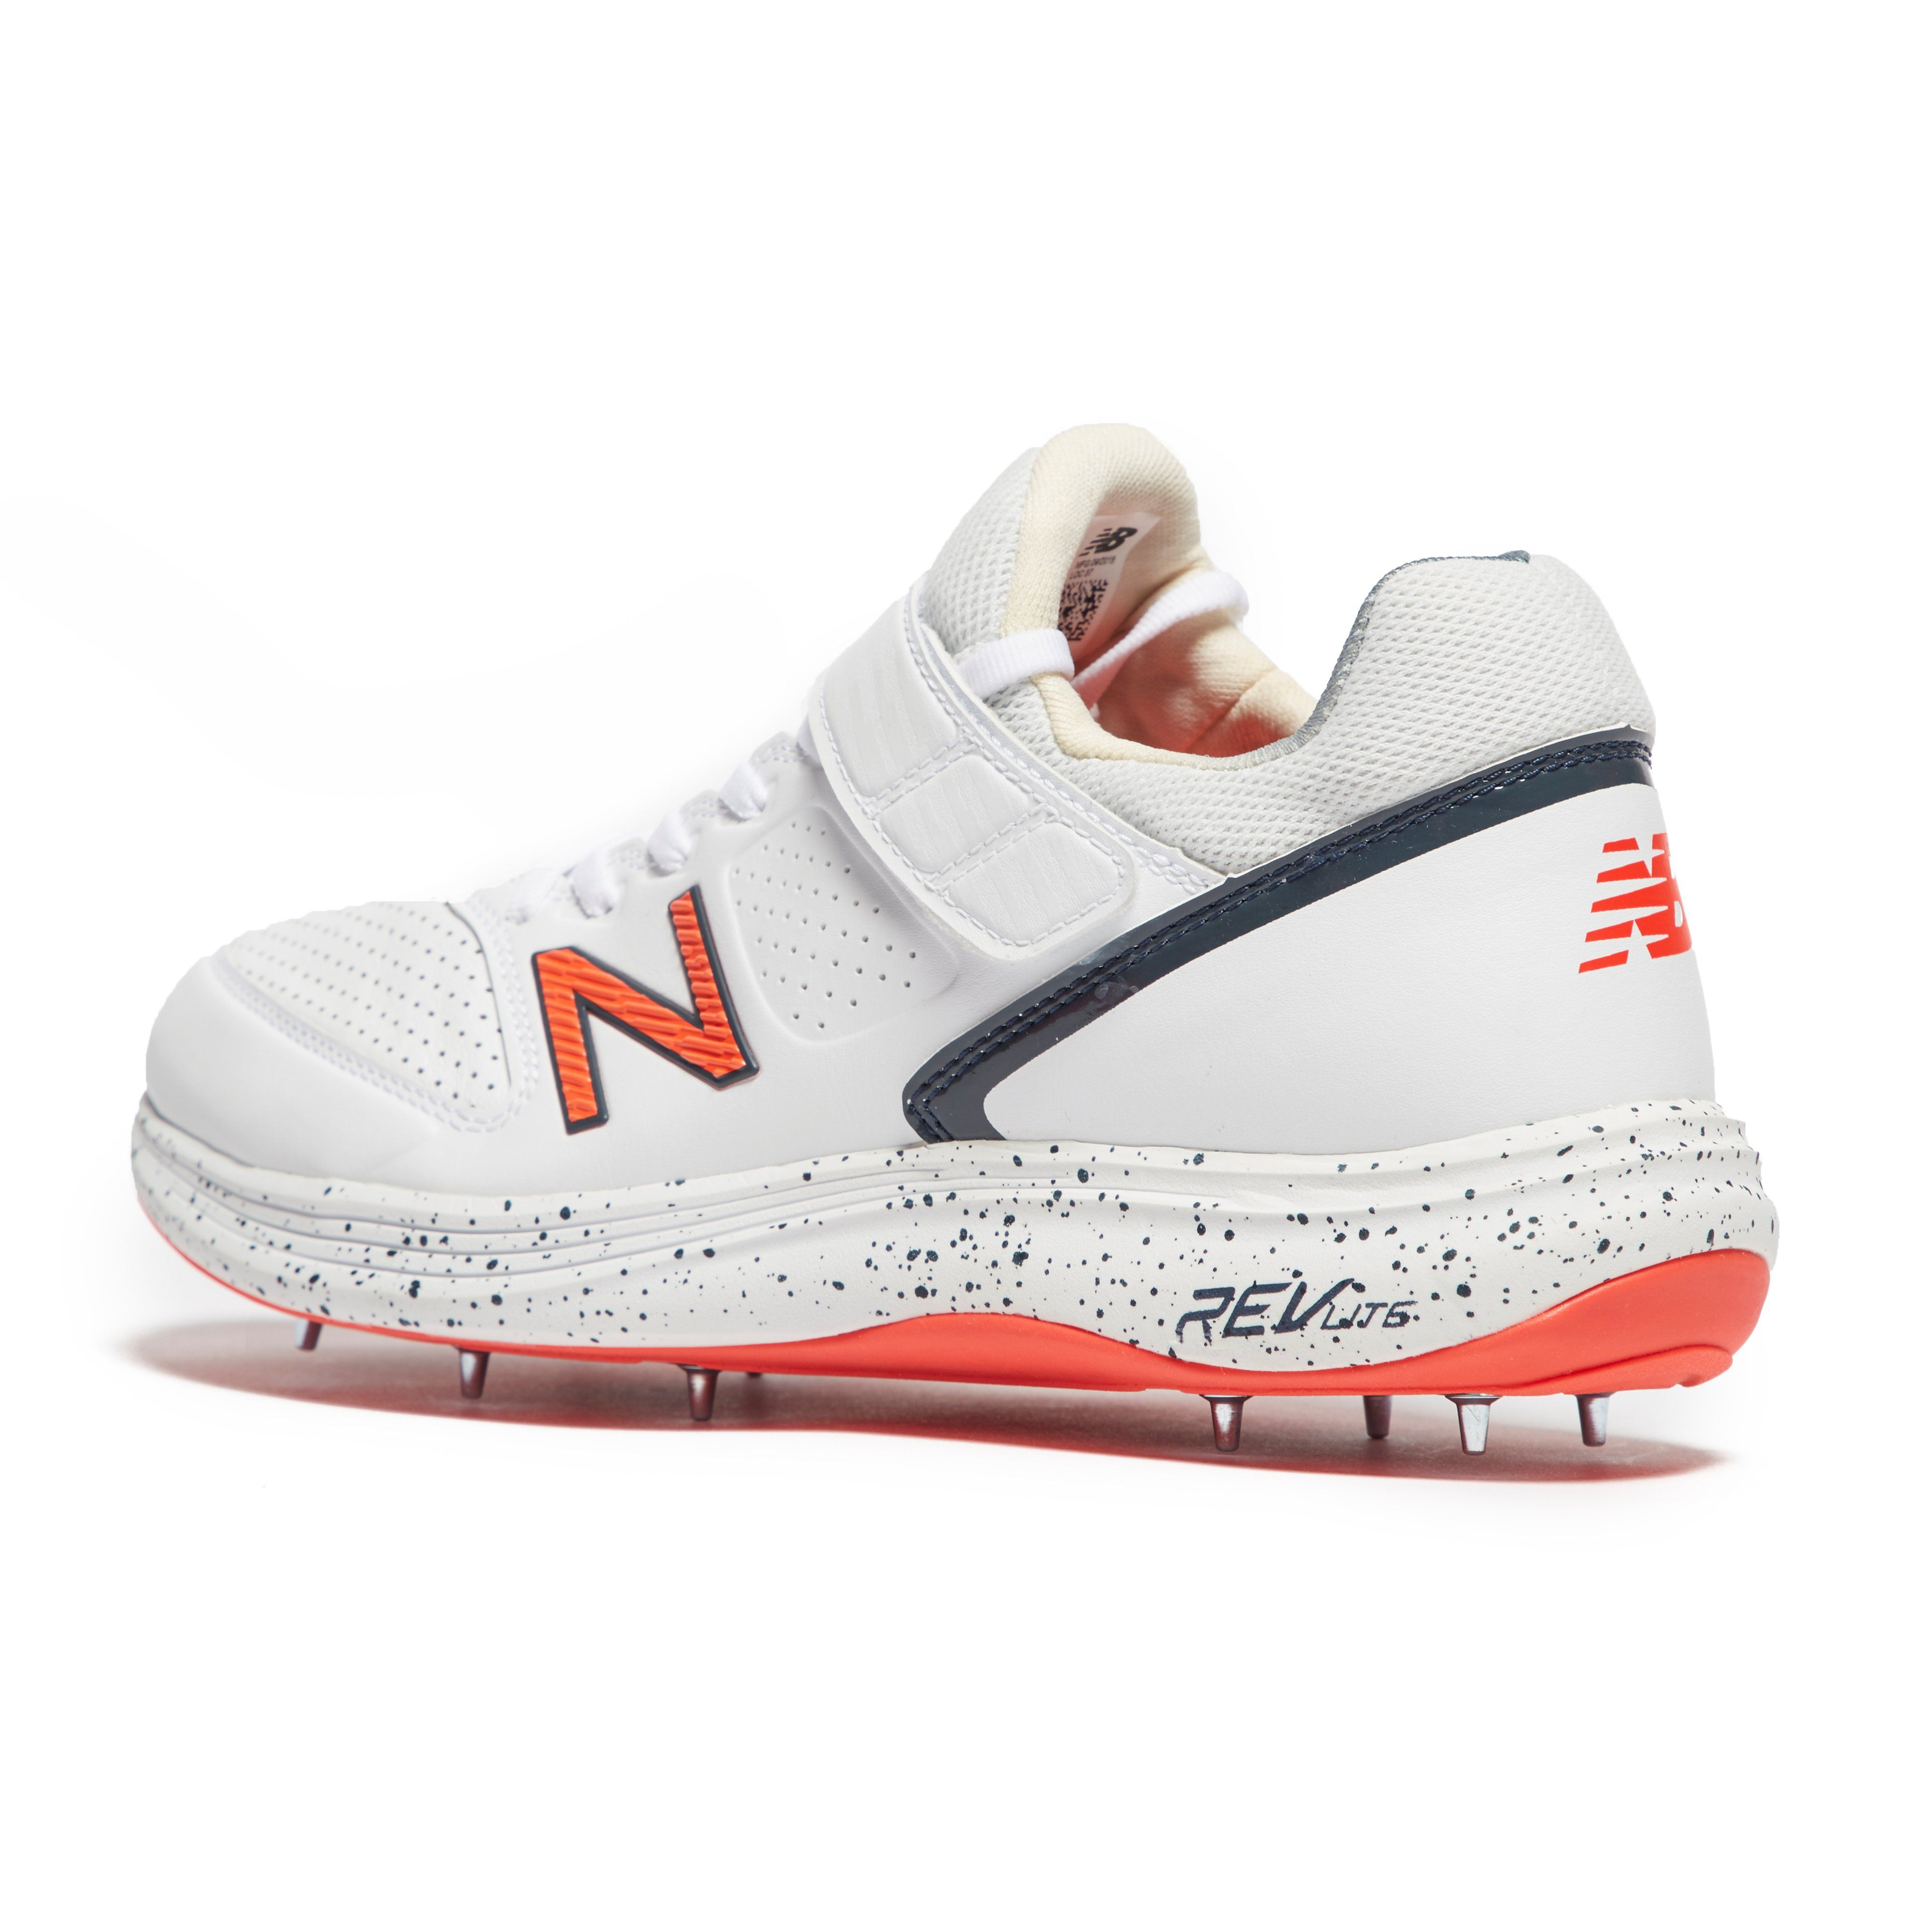 New Balance 4040 Men's Cricket Shoes